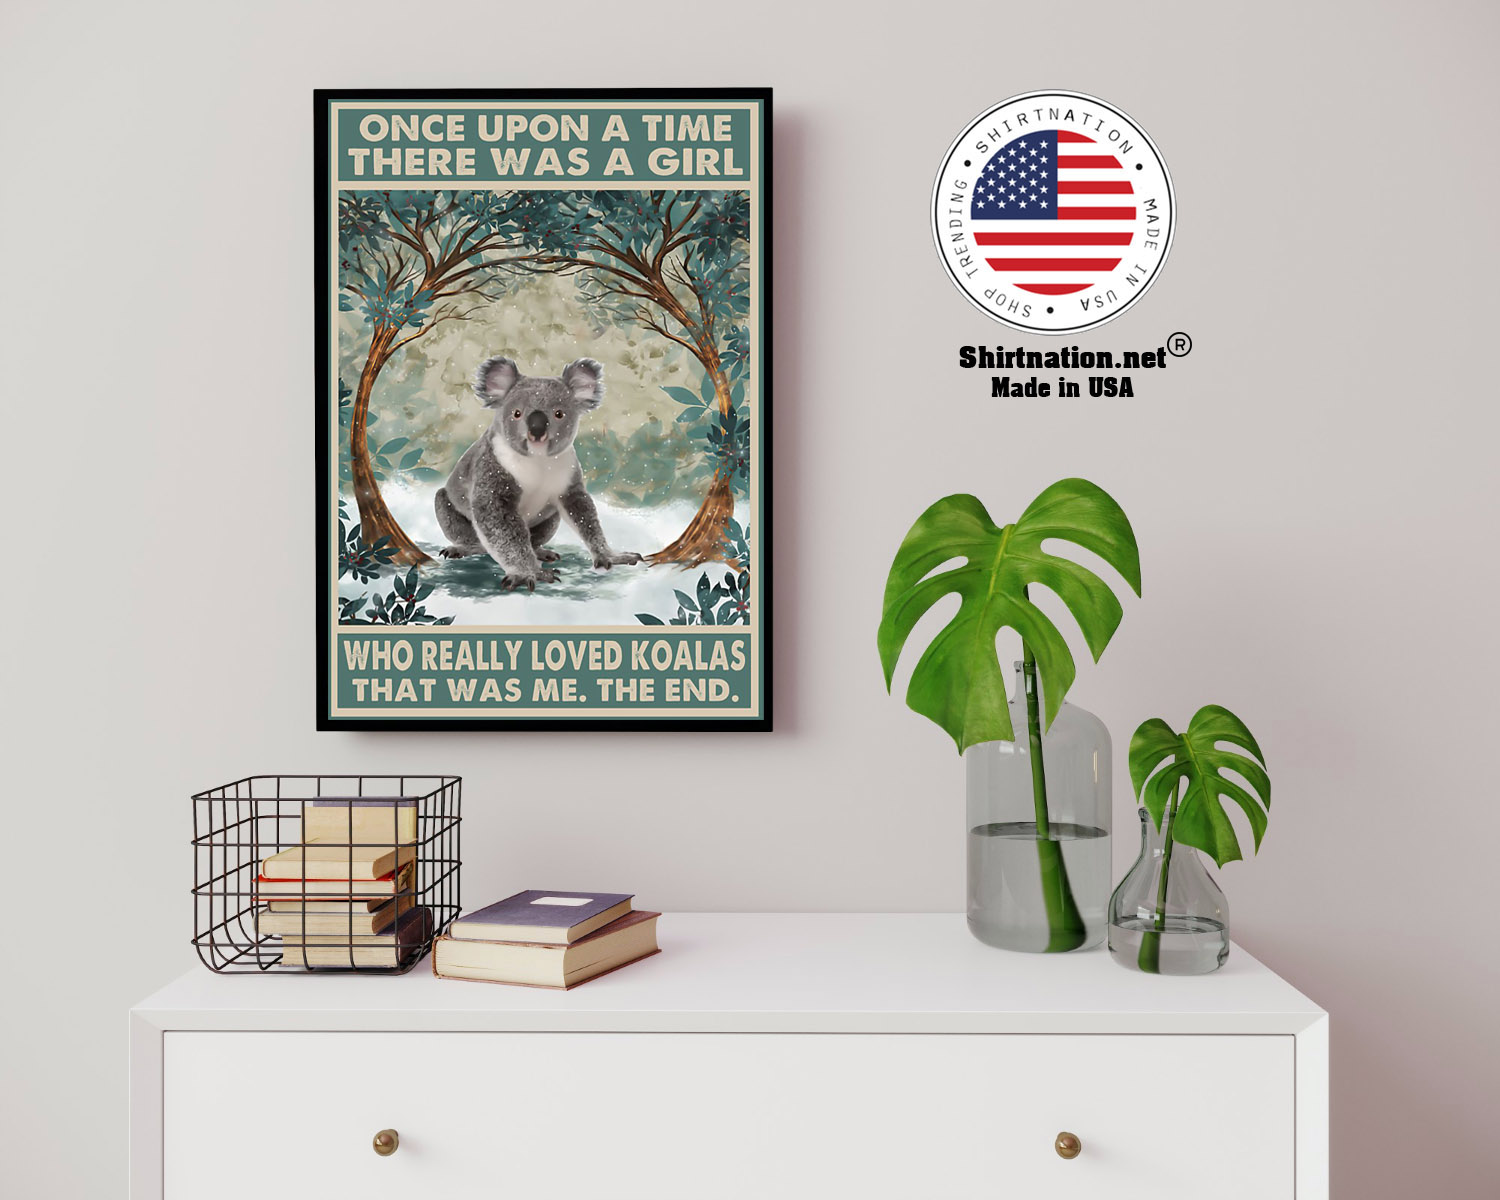 Once upon a time there was a girl who really loved koalas poster 14 1